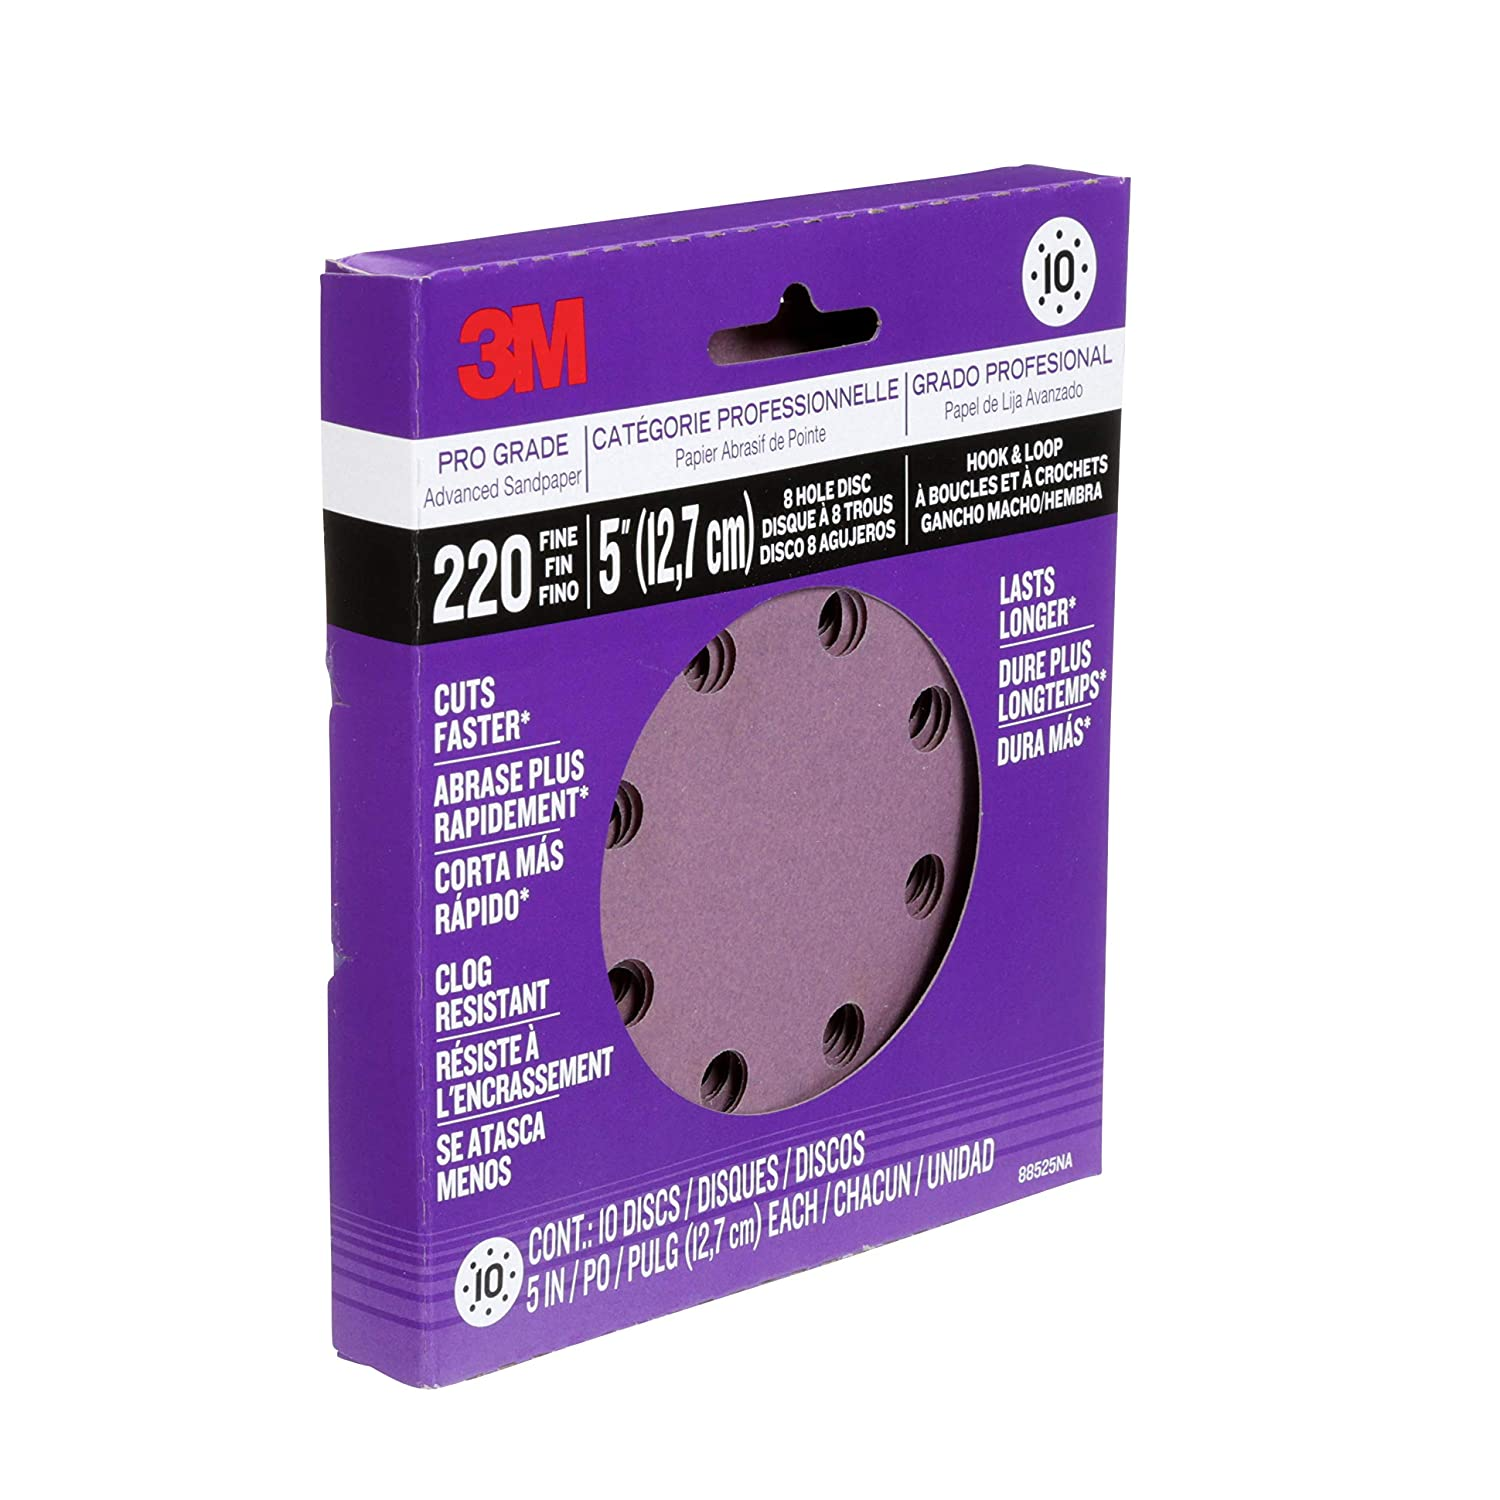 3M 88525NA-9-B Pro Grade 5-Inch 8-Hole Sanding Disc 3M Office Products